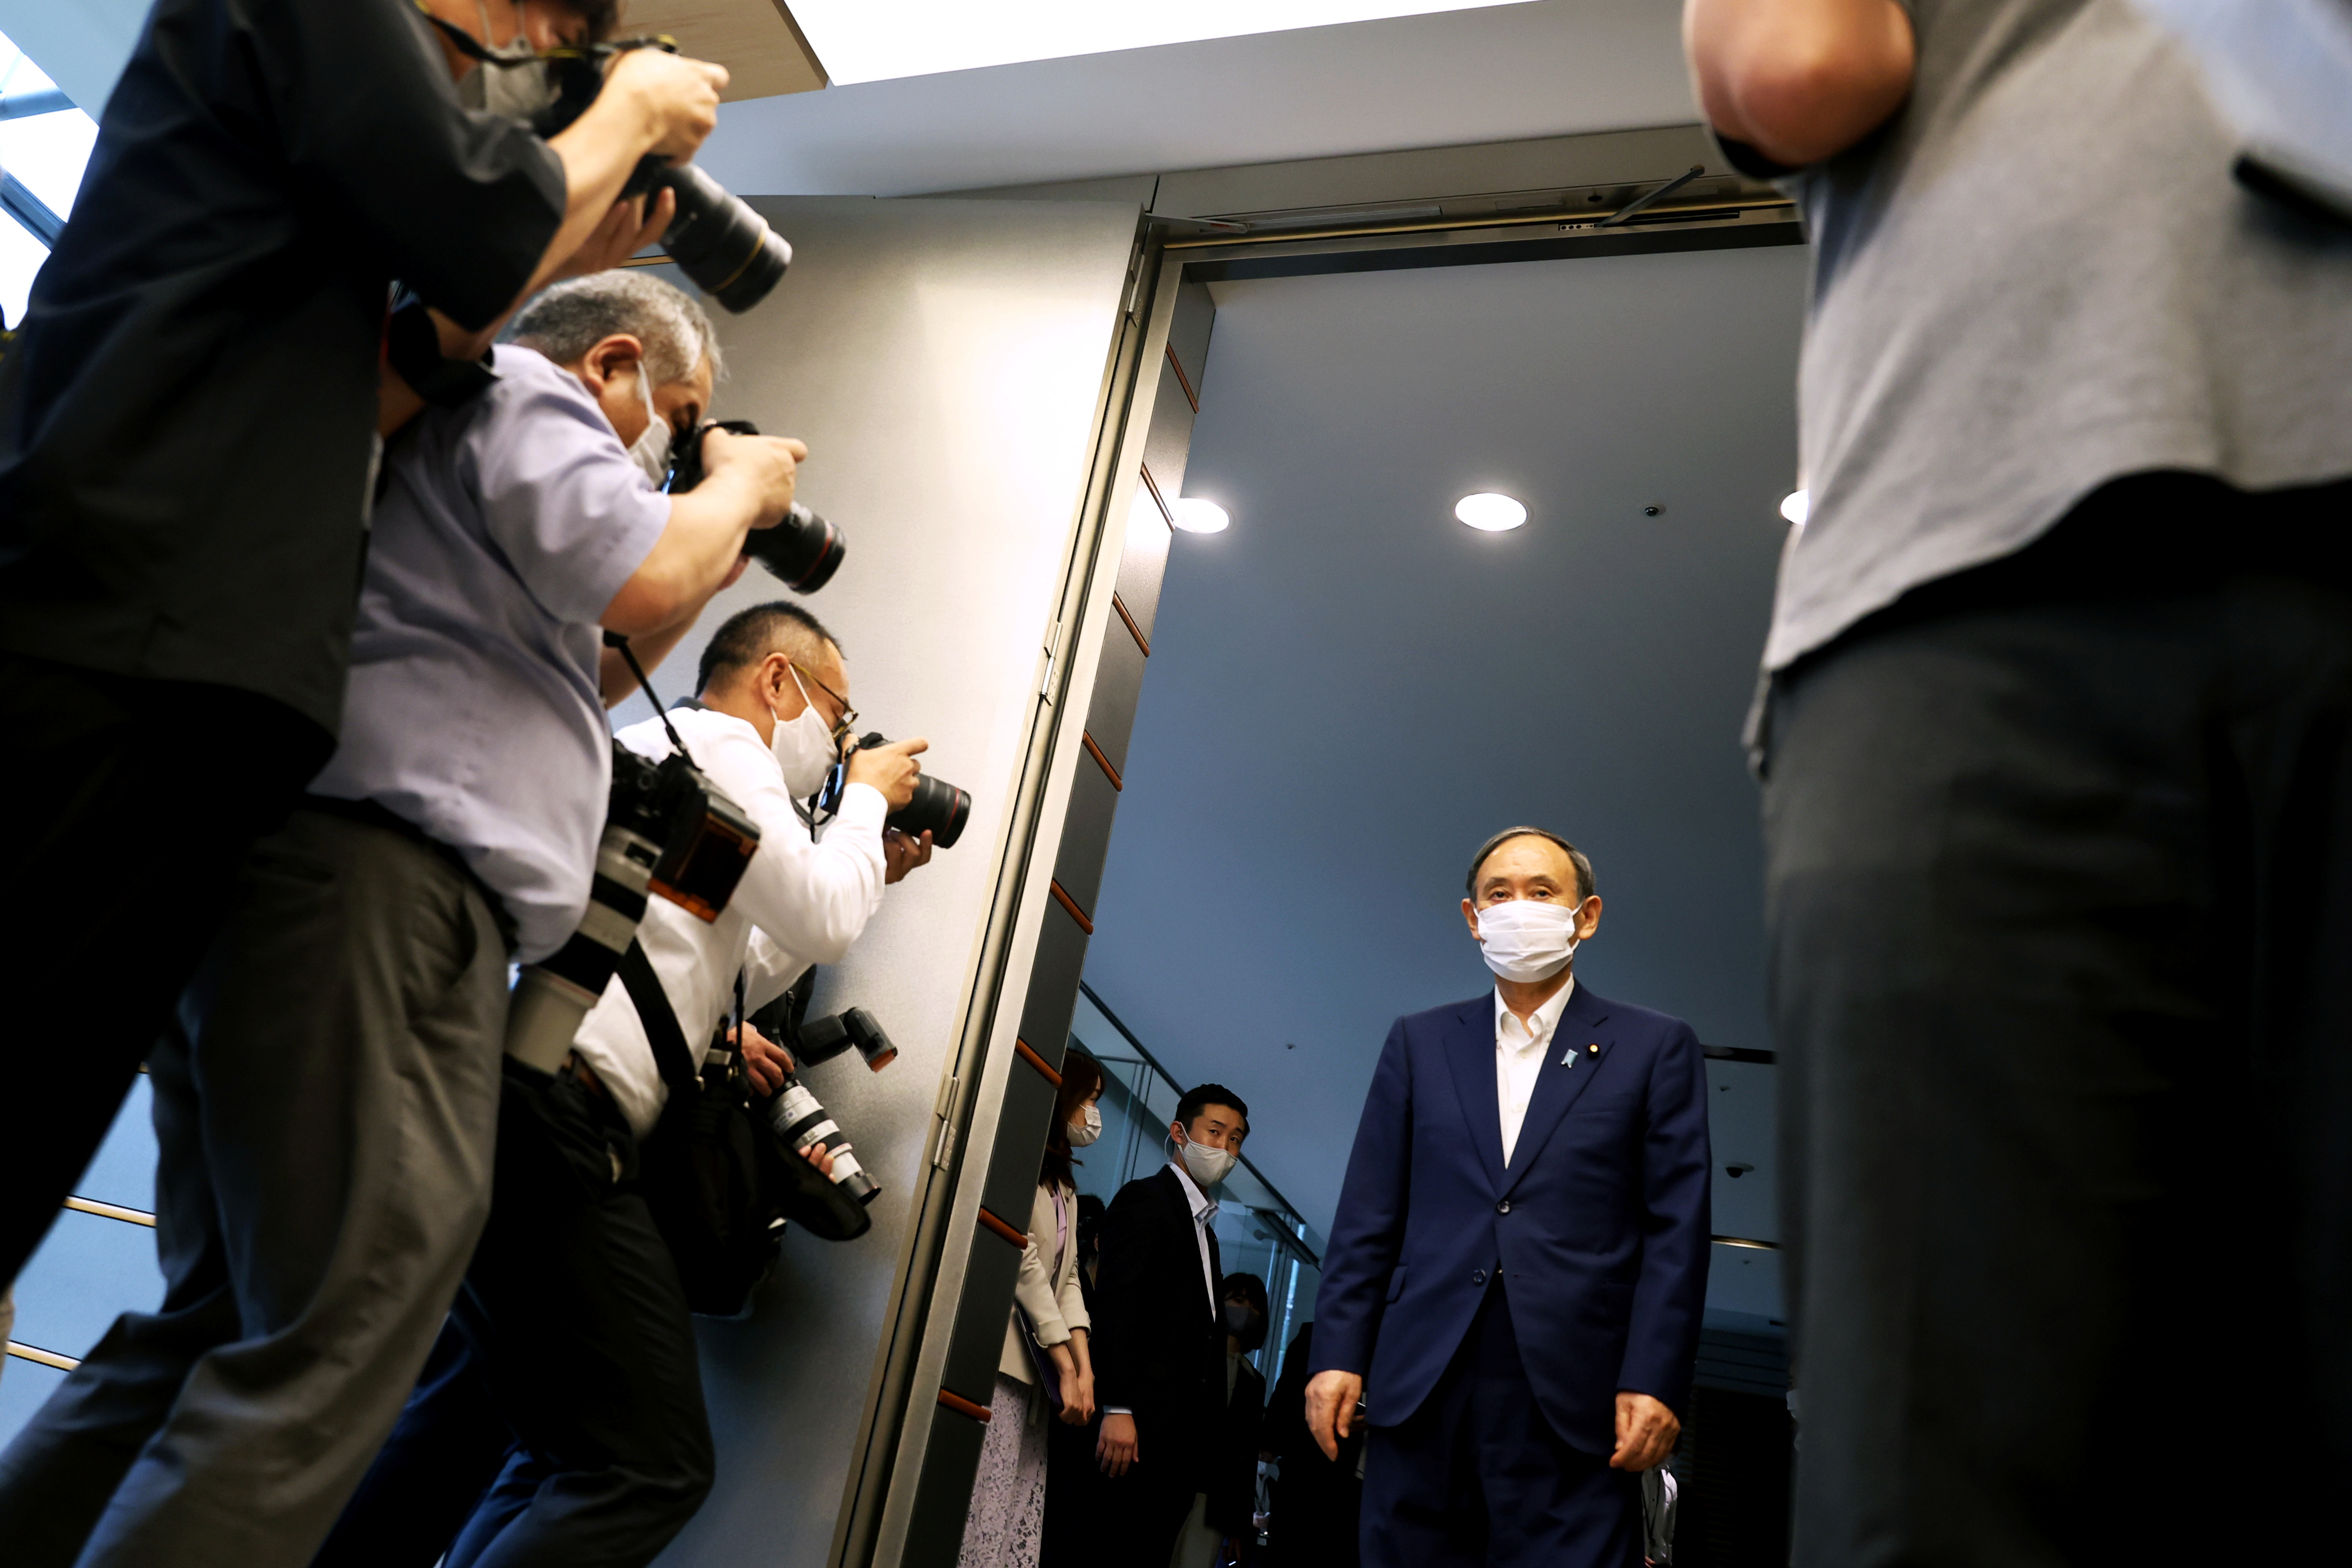 Japan's Prime Minister Yoshihide Suga arrives to meet with president of the International Paralympic Committee (IPC) Andrew Parsons in Tokyo, Japan September 3, 2021, following his announcement that he will not seek re-election for Liberal Democratic Party (LDP) leadership this month. Behrouz Mehri/Pool via REUTERS